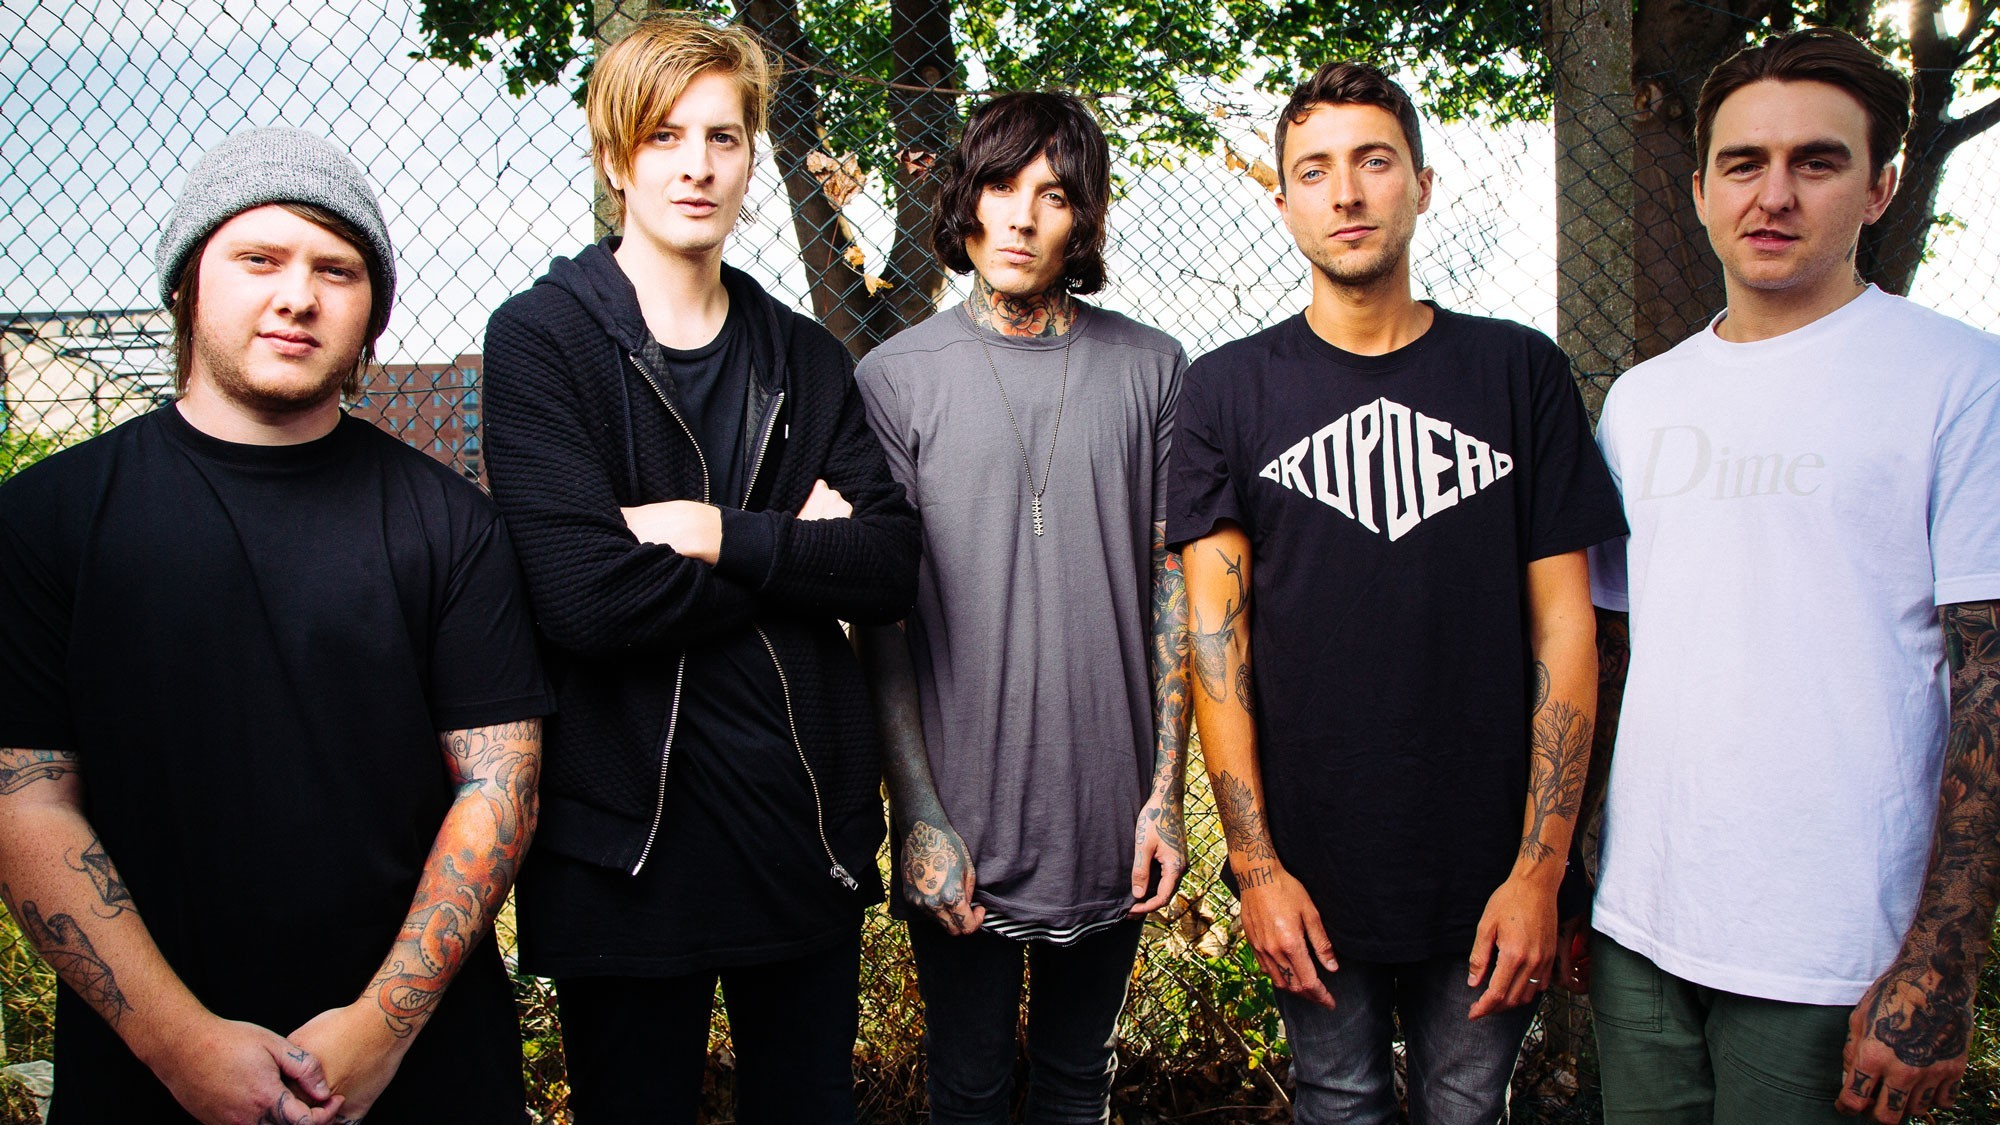 Bring - Bring Me The Horizon Group , HD Wallpaper & Backgrounds